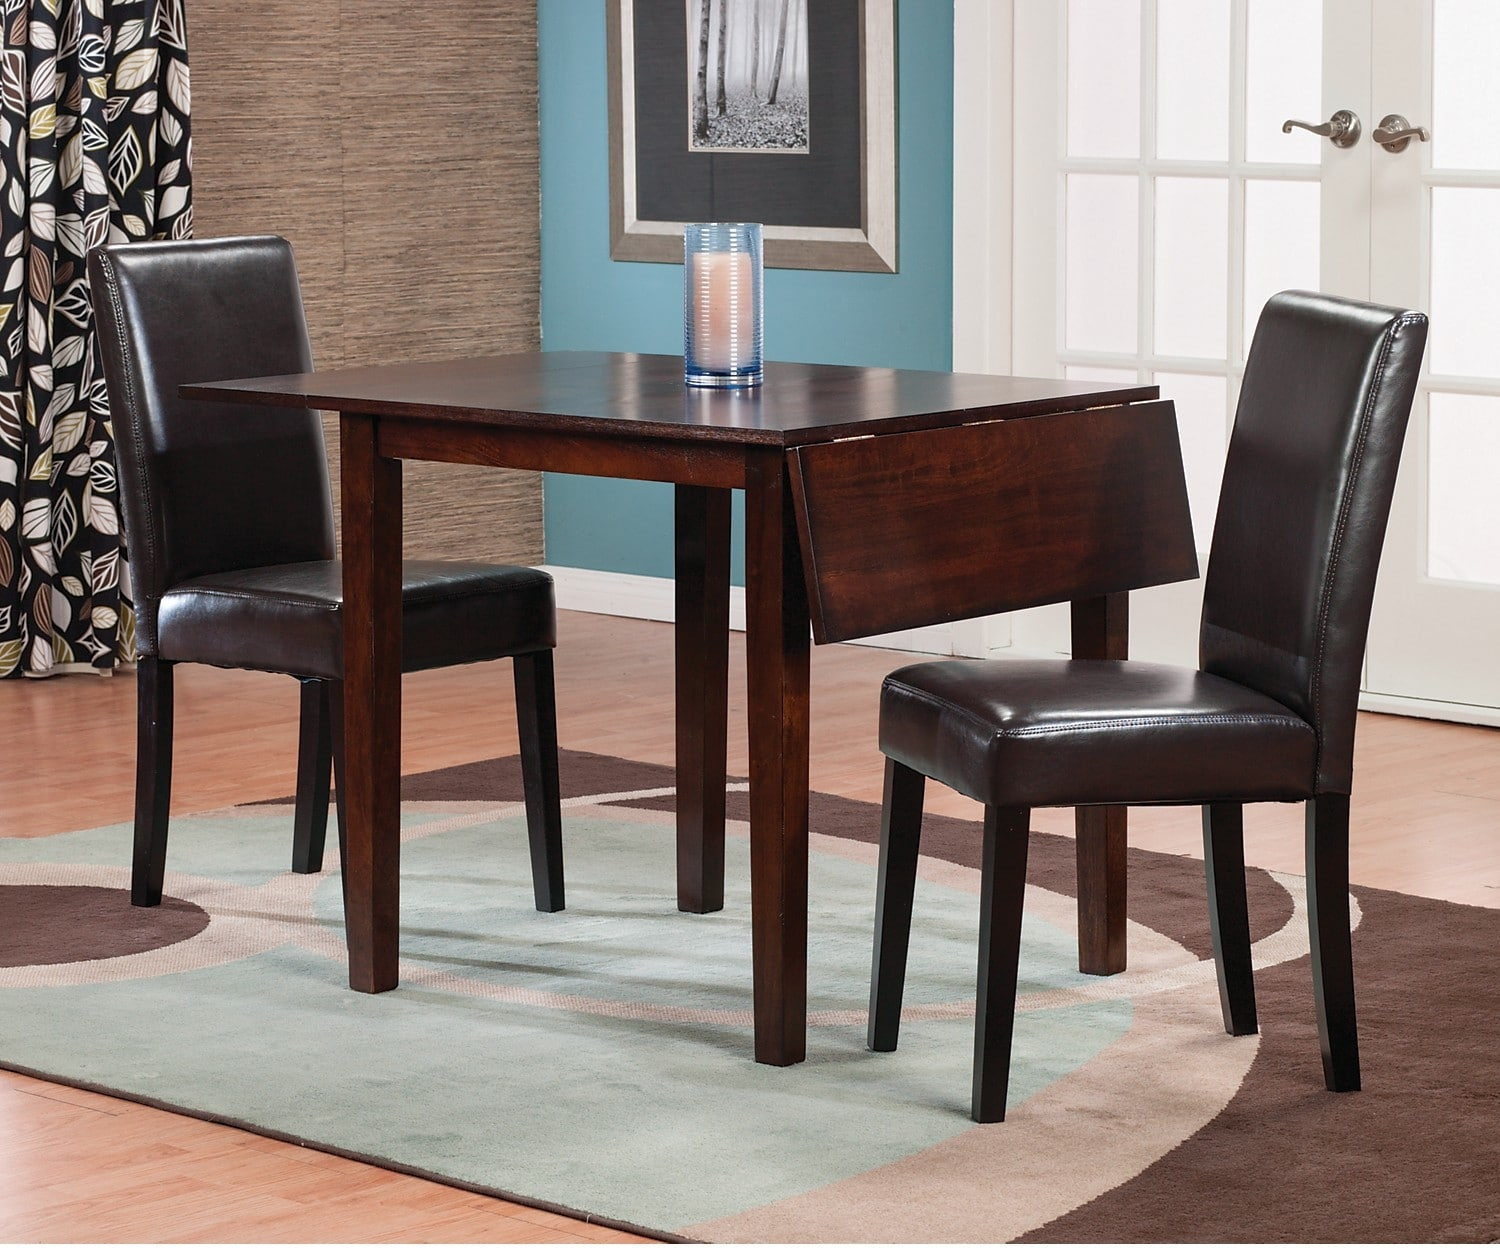 Dining Room Furniture - Dakota 3-Piece Square Table Dining Package with Brown Chairs